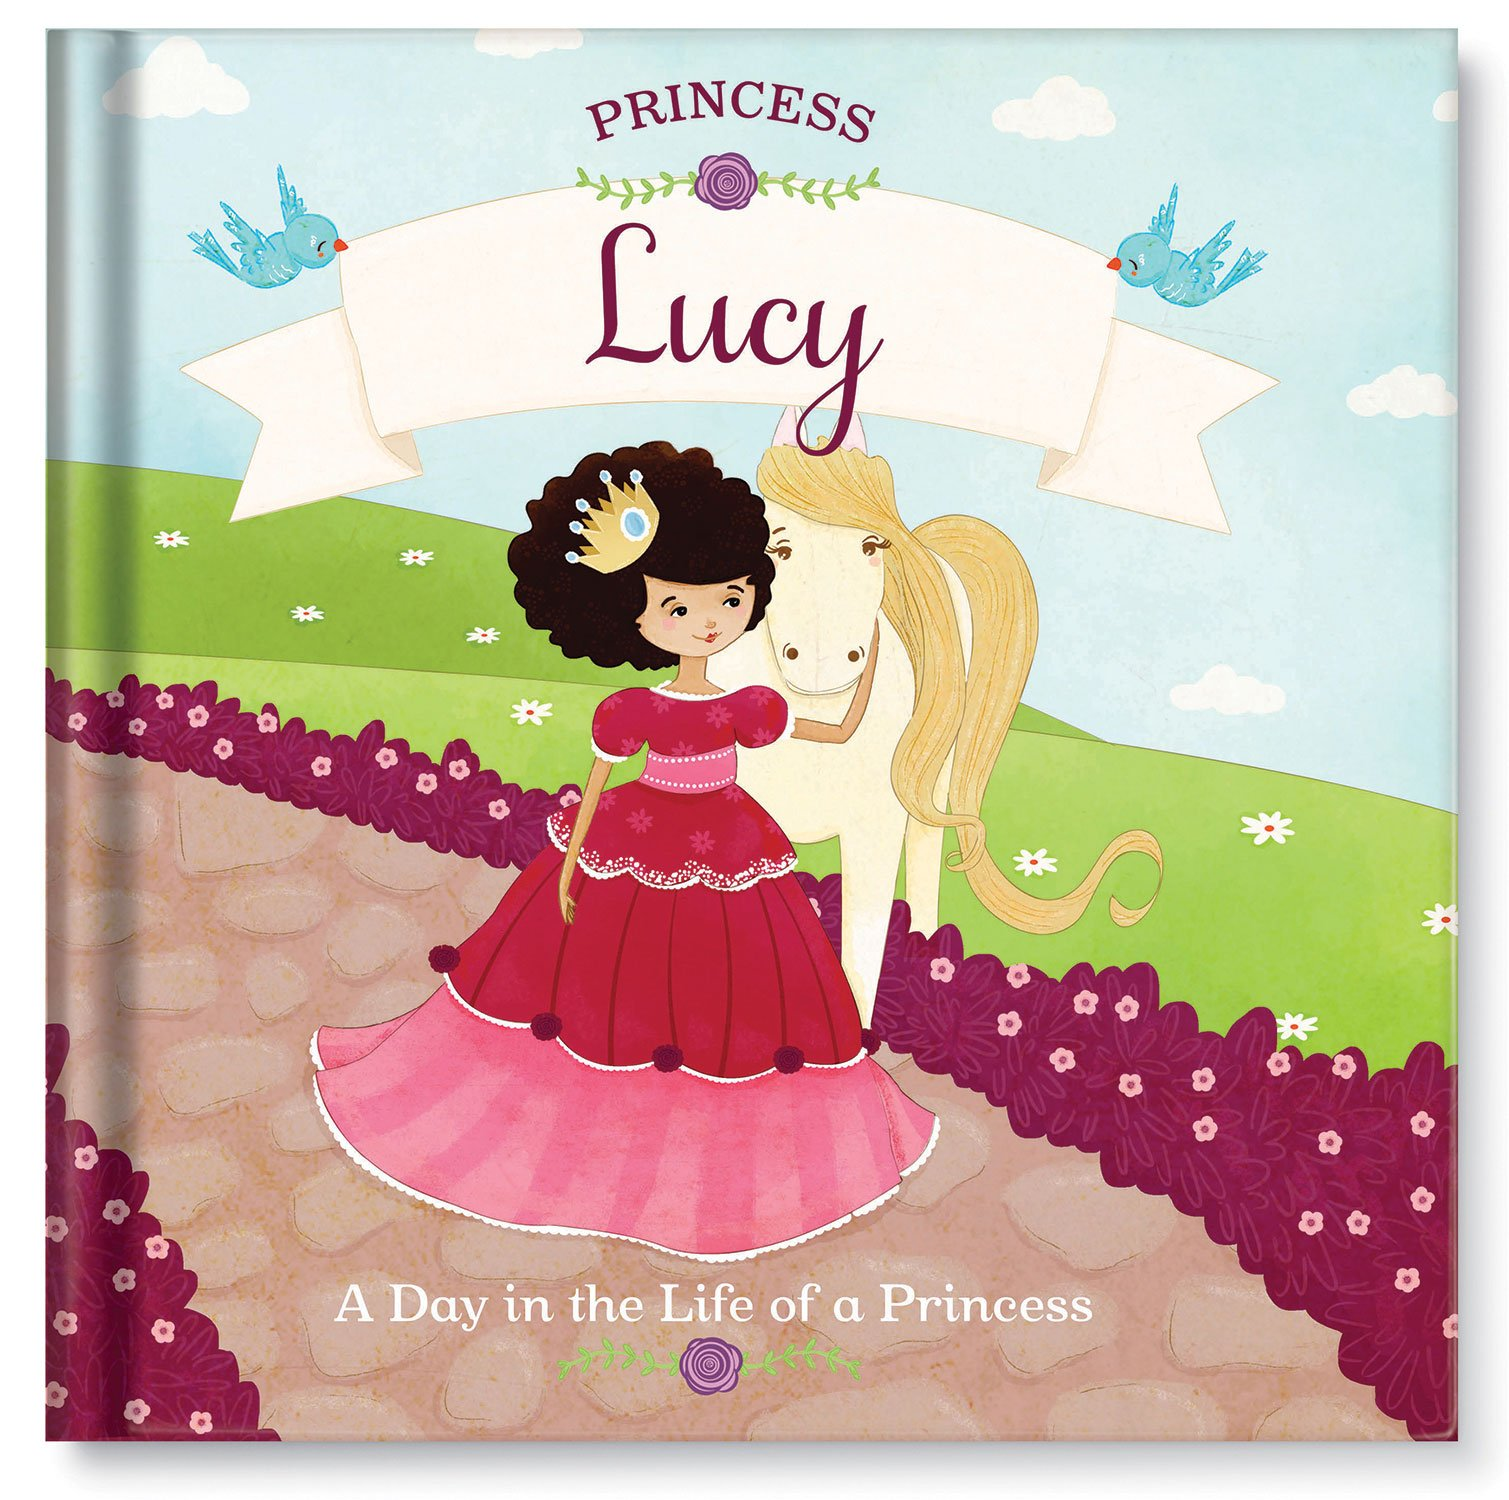 Princess Tea Party Dress up Personalized Custom Name Book for Girls